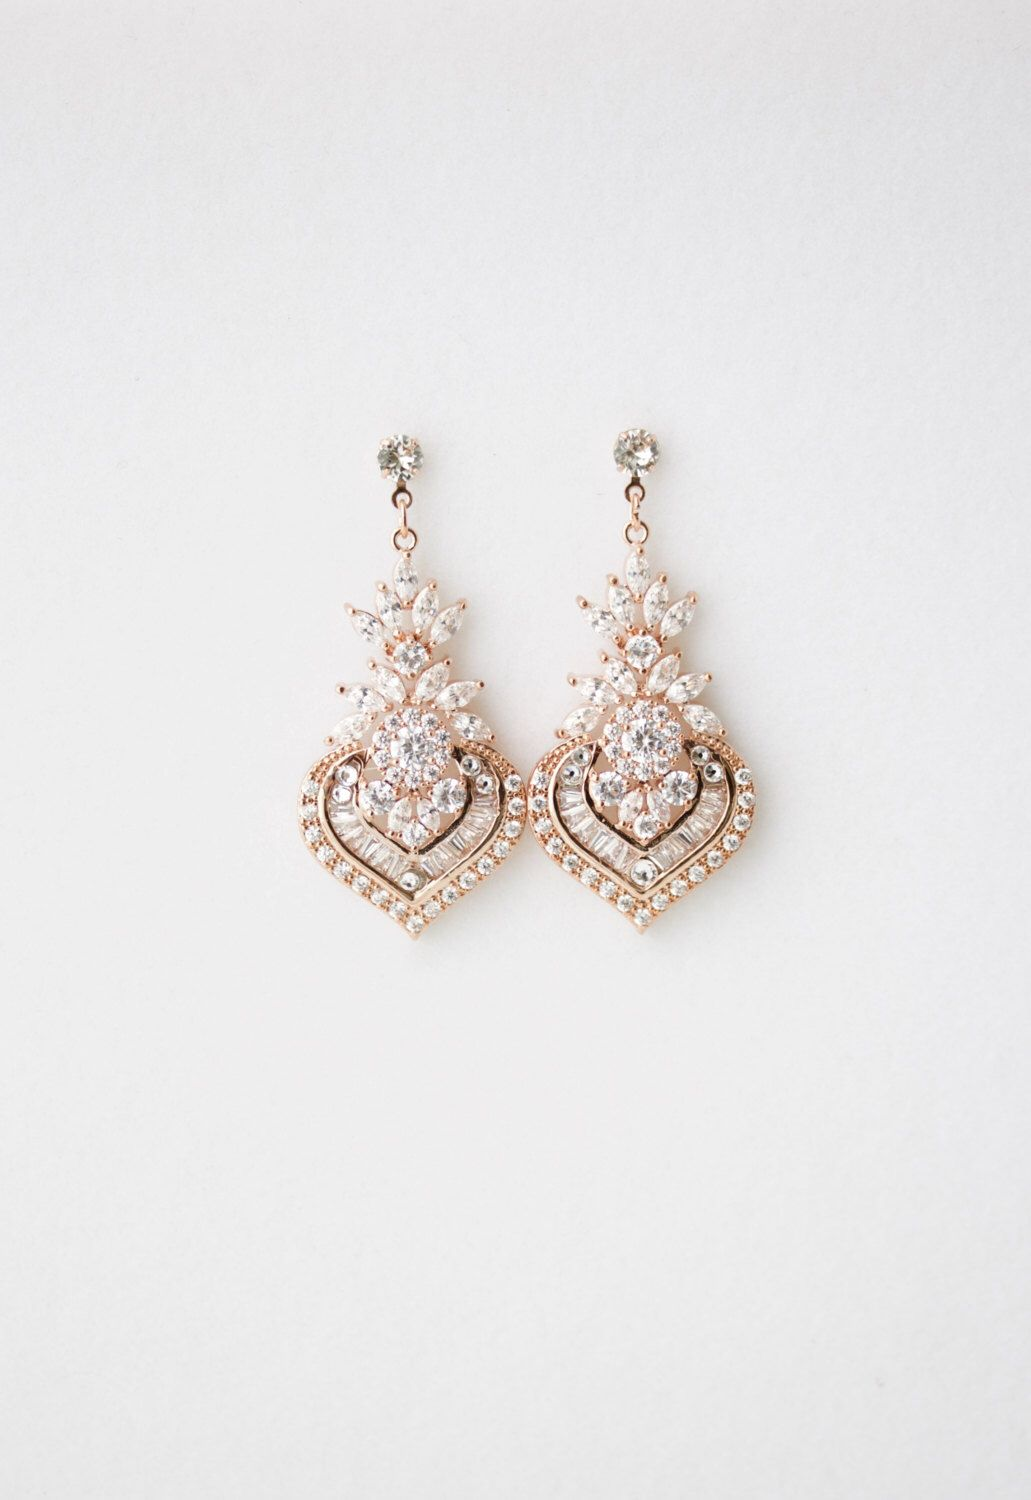 Wedding Earrings Chandelier Bridal Rose Gold Jewelry Crystal Pink Evie